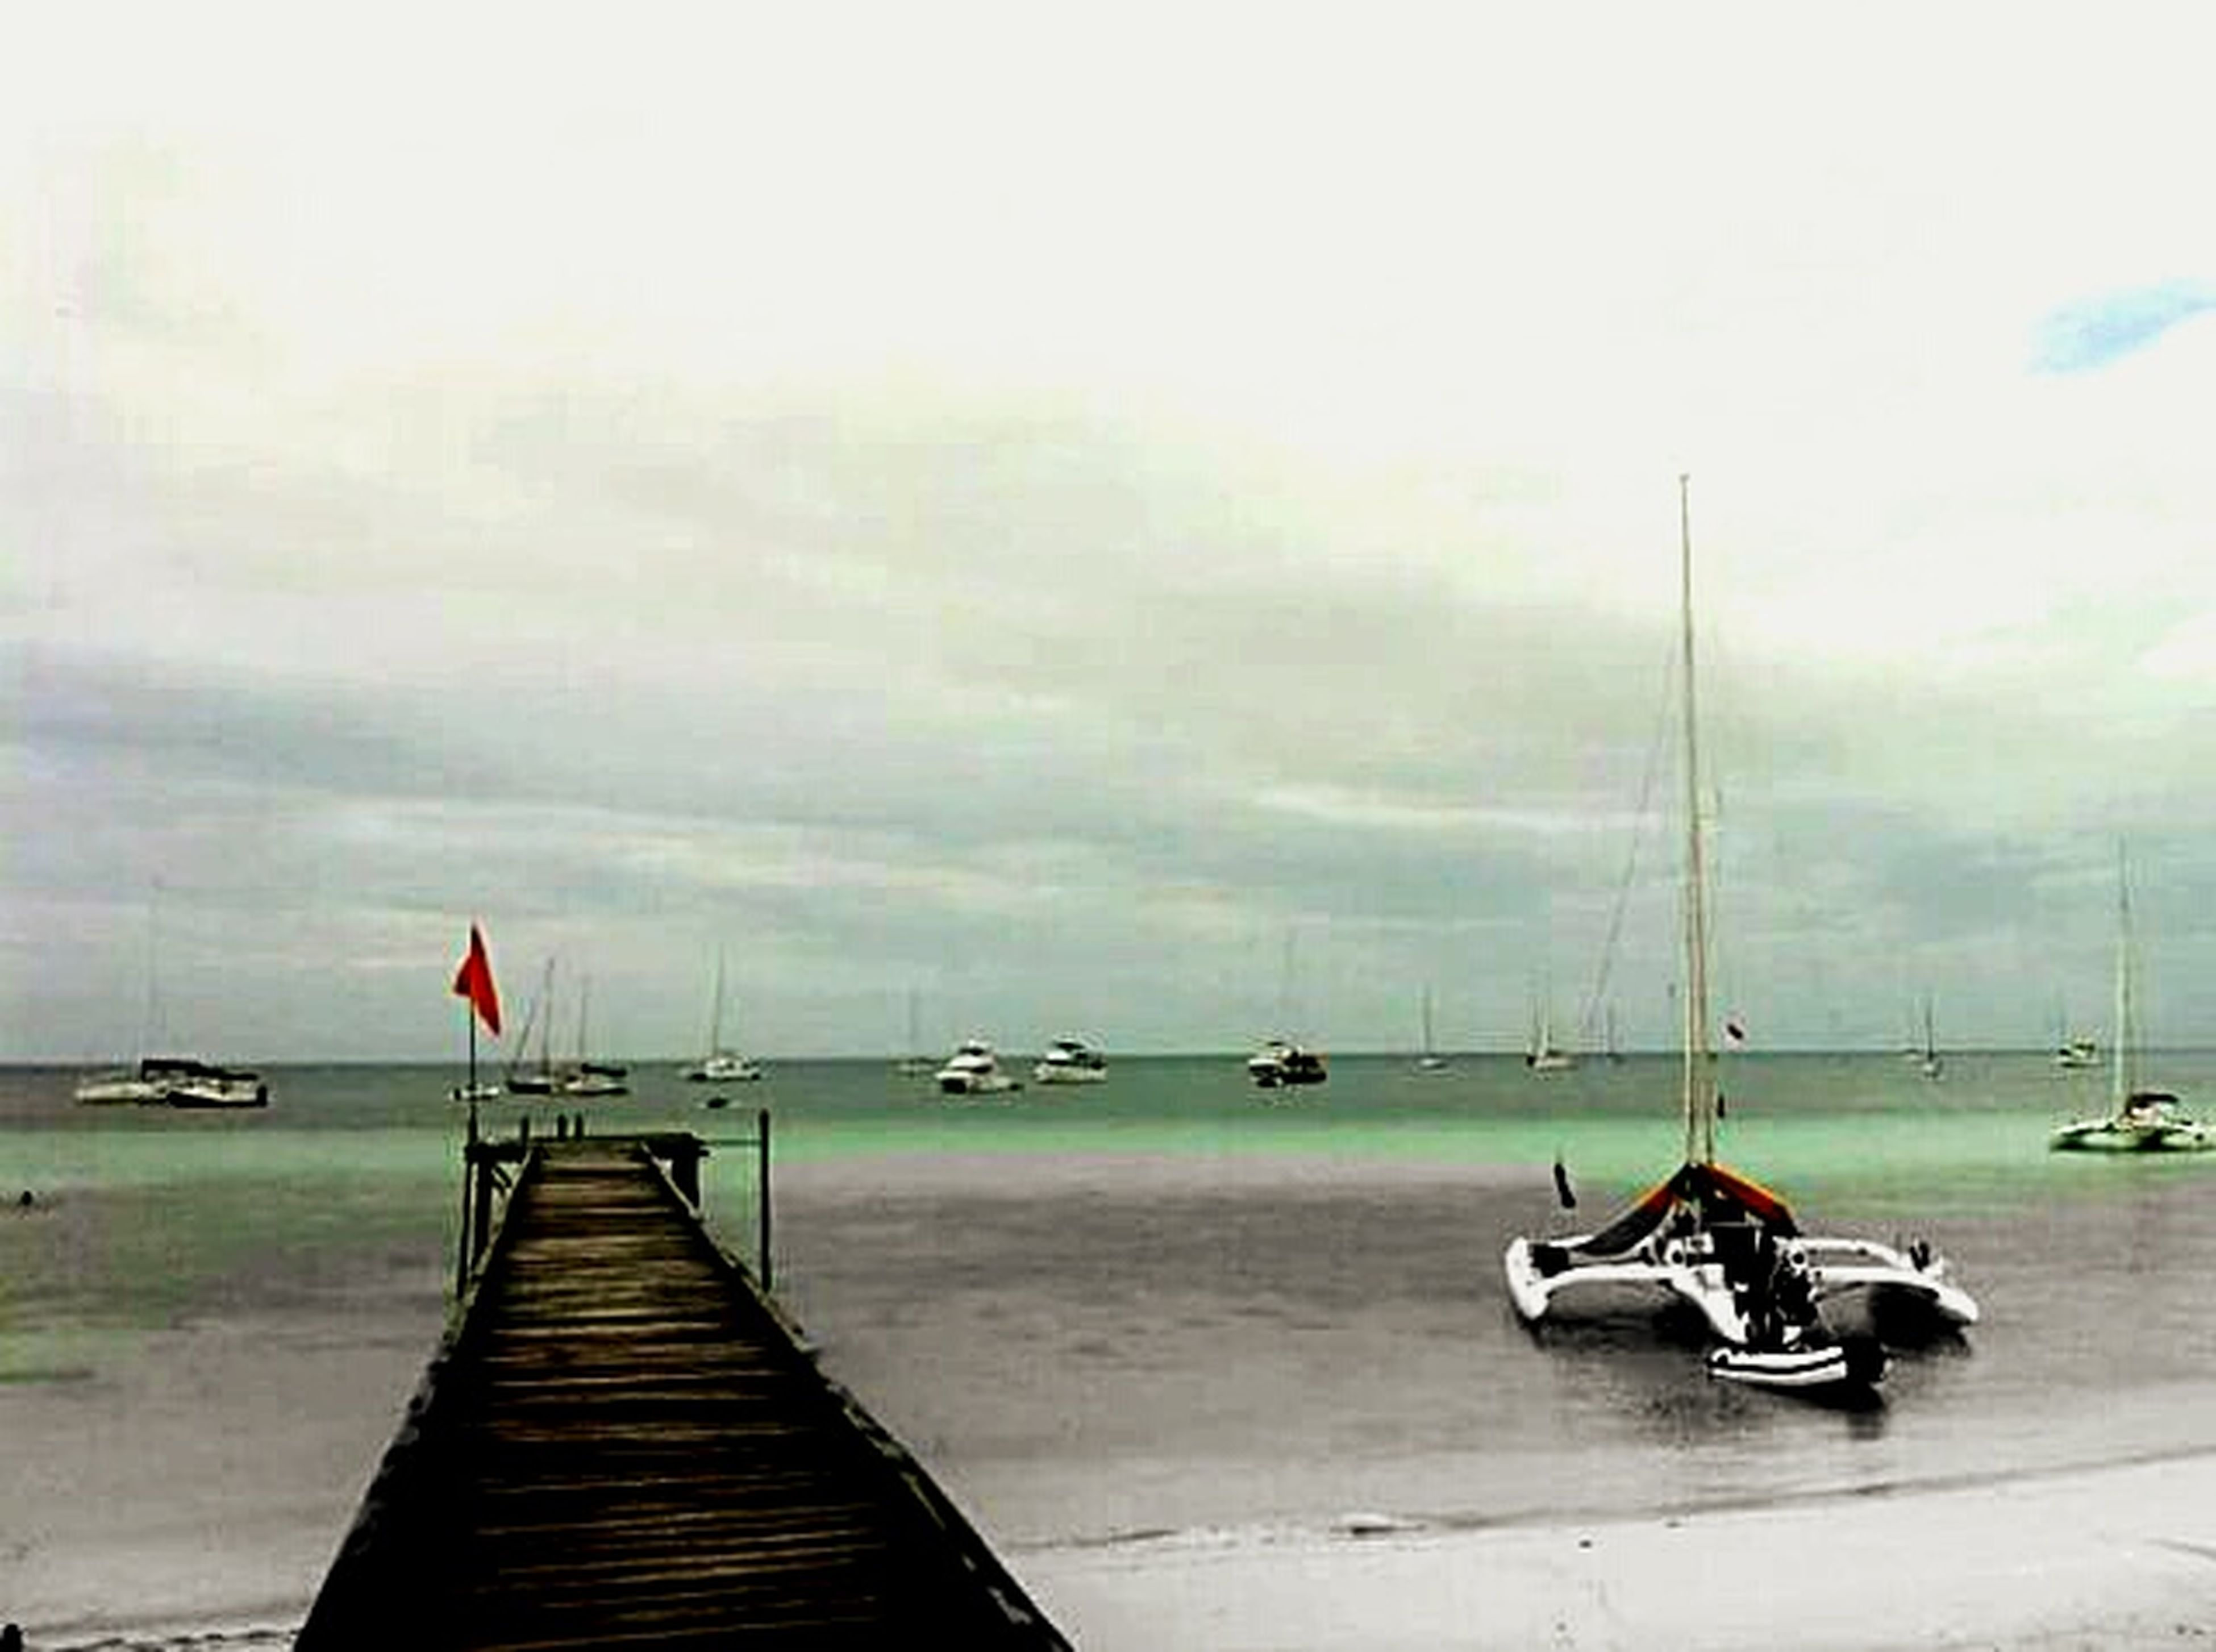 transportation, sky, sea, nautical vessel, mode of transport, water, the way forward, pier, cloud - sky, boat, moored, overcast, cloudy, horizon over water, weather, diminishing perspective, outdoors, empty, built structure, nature